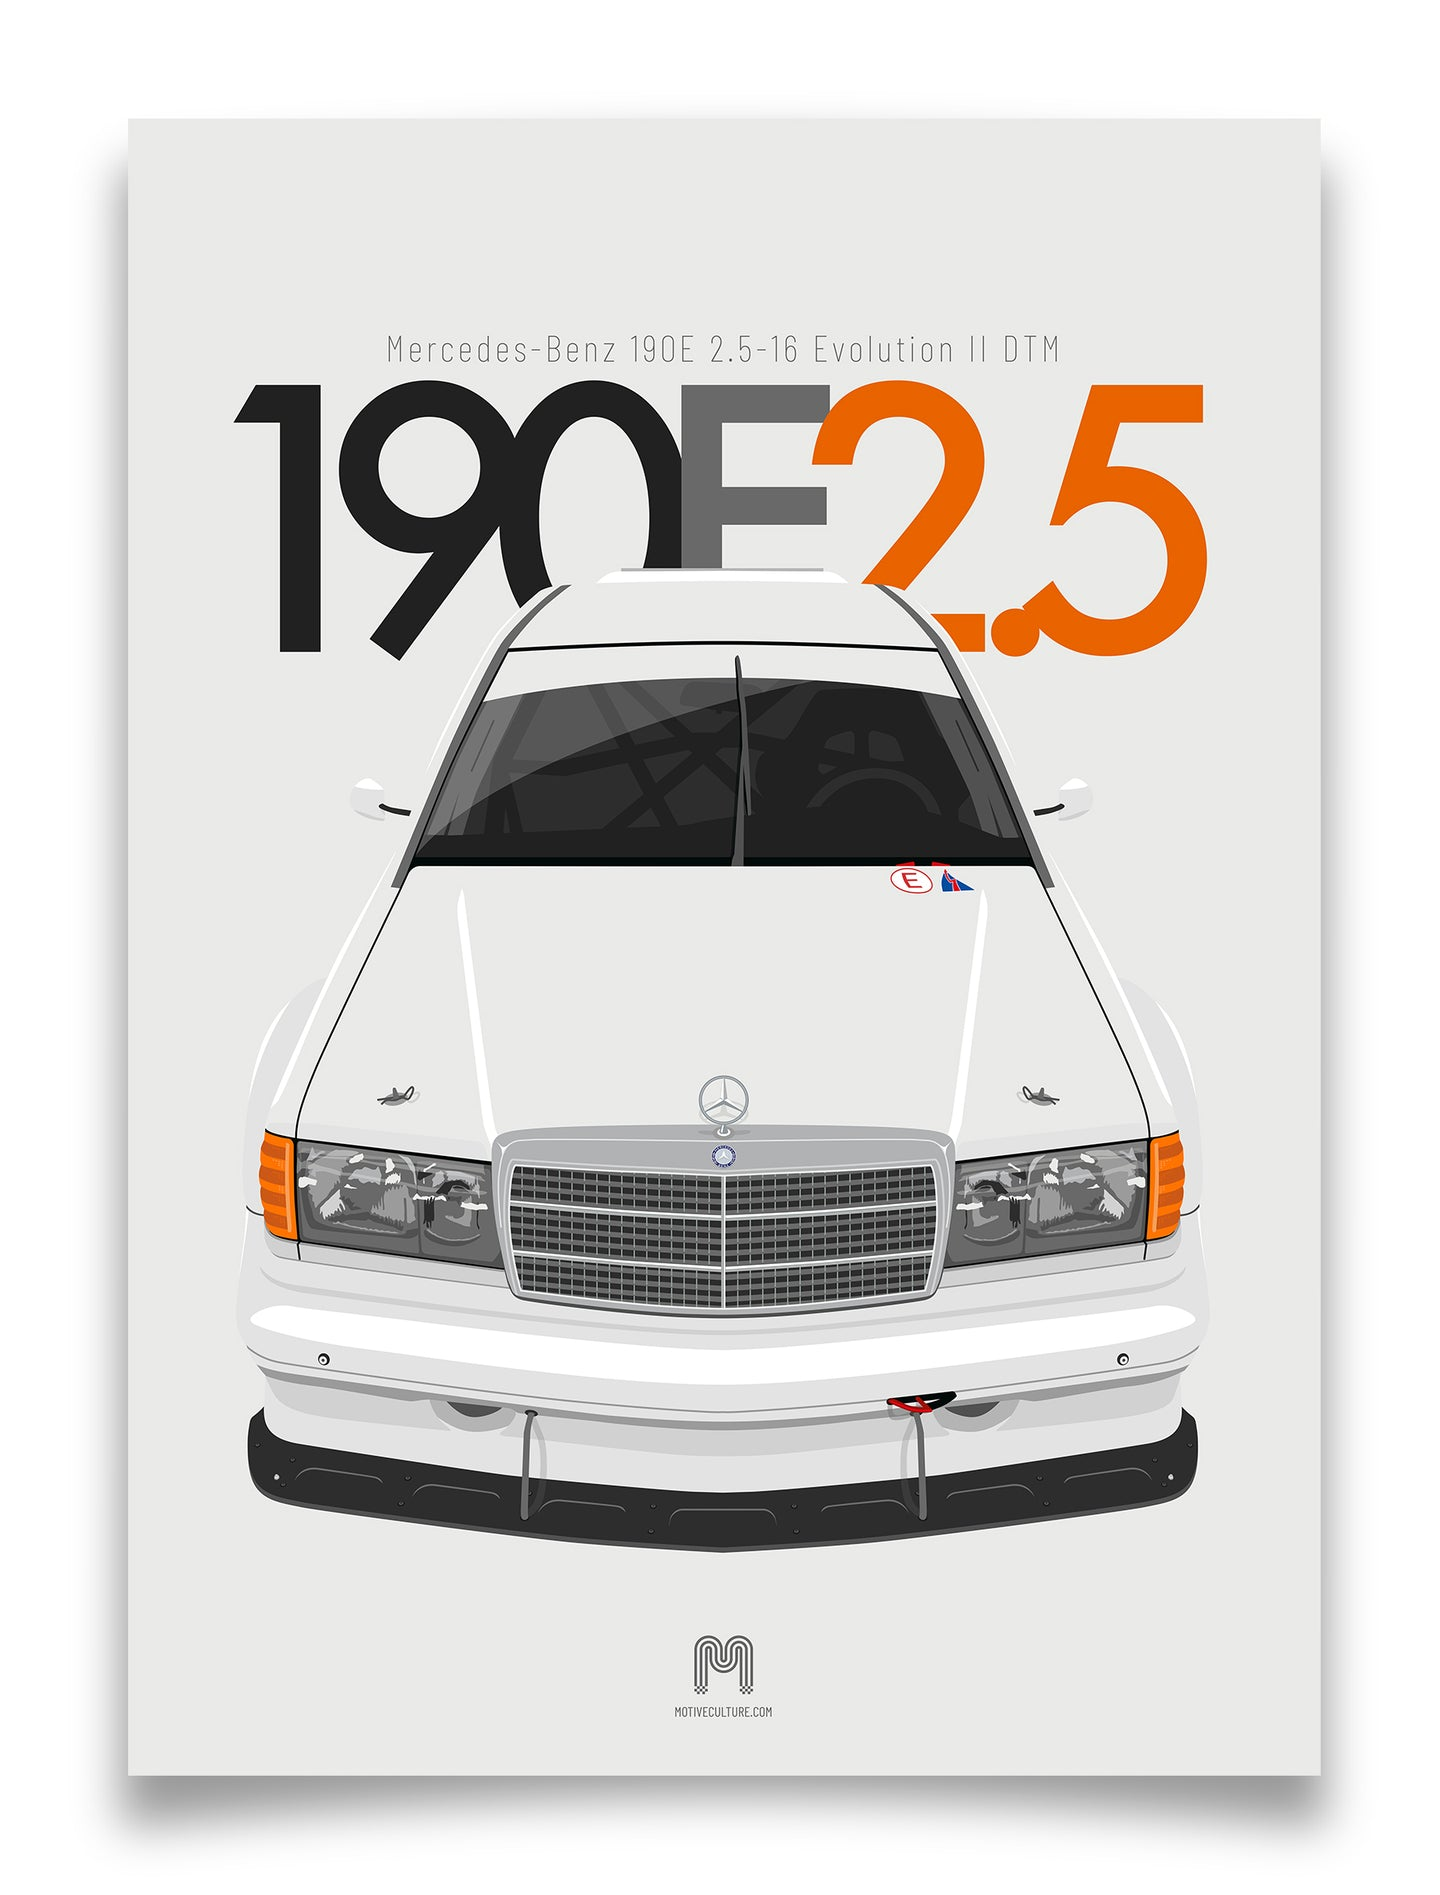 1992 Mercedes-Benz 190E 2.5-16 Evolution II DTM - poster print